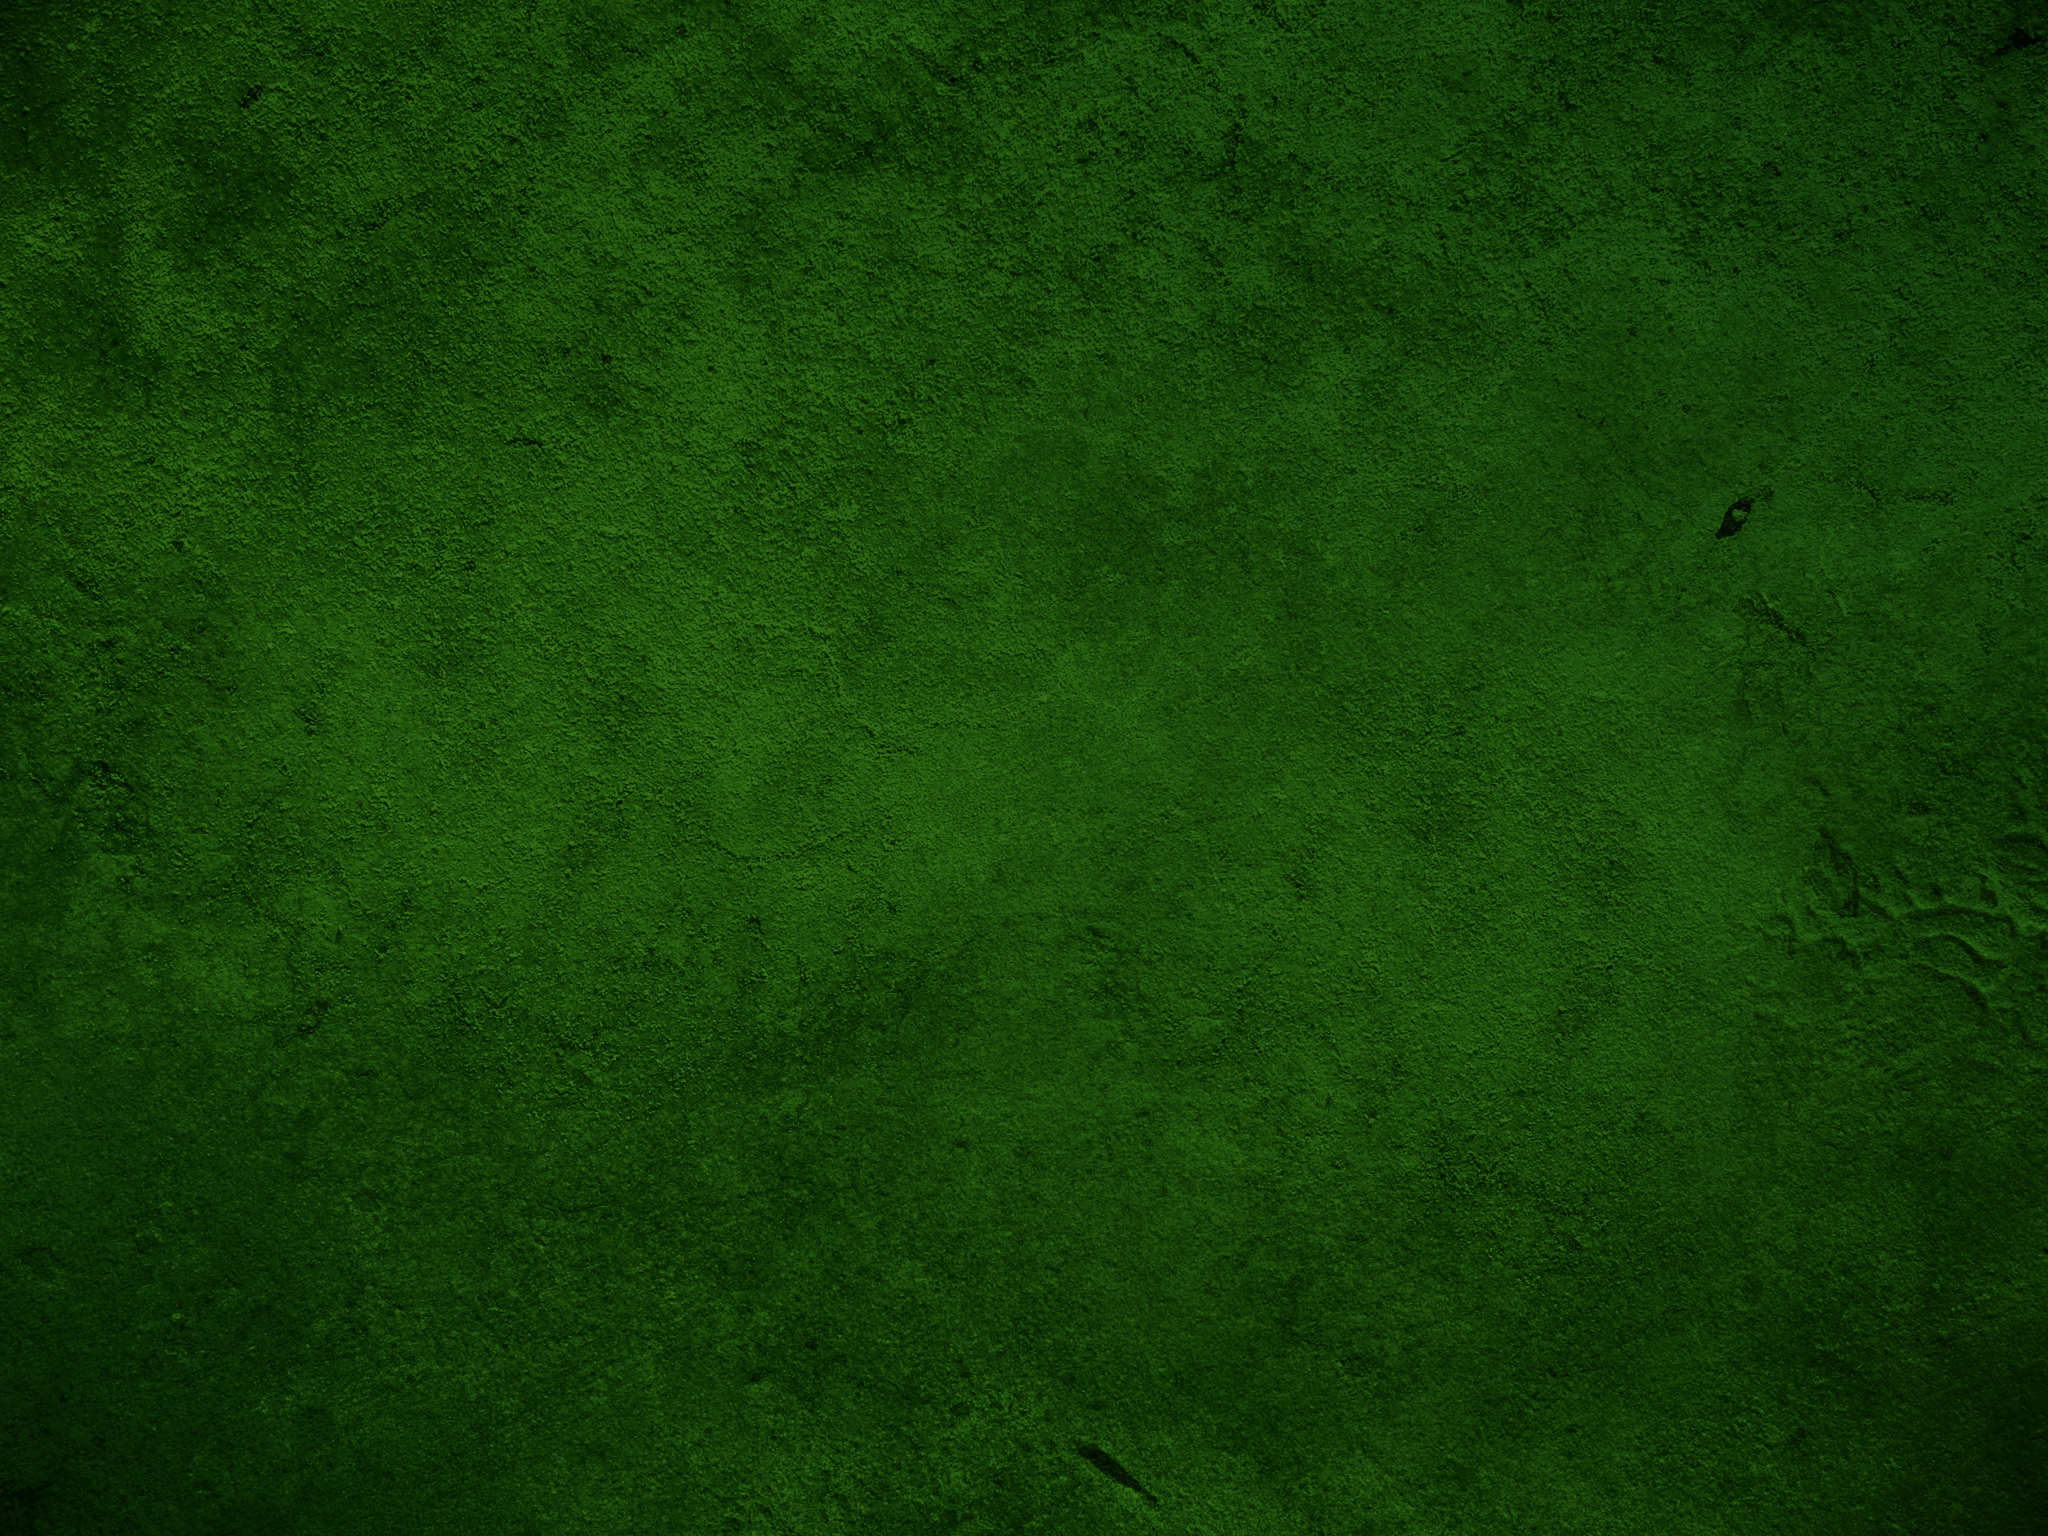 Green Background Images - WallpaperSafari